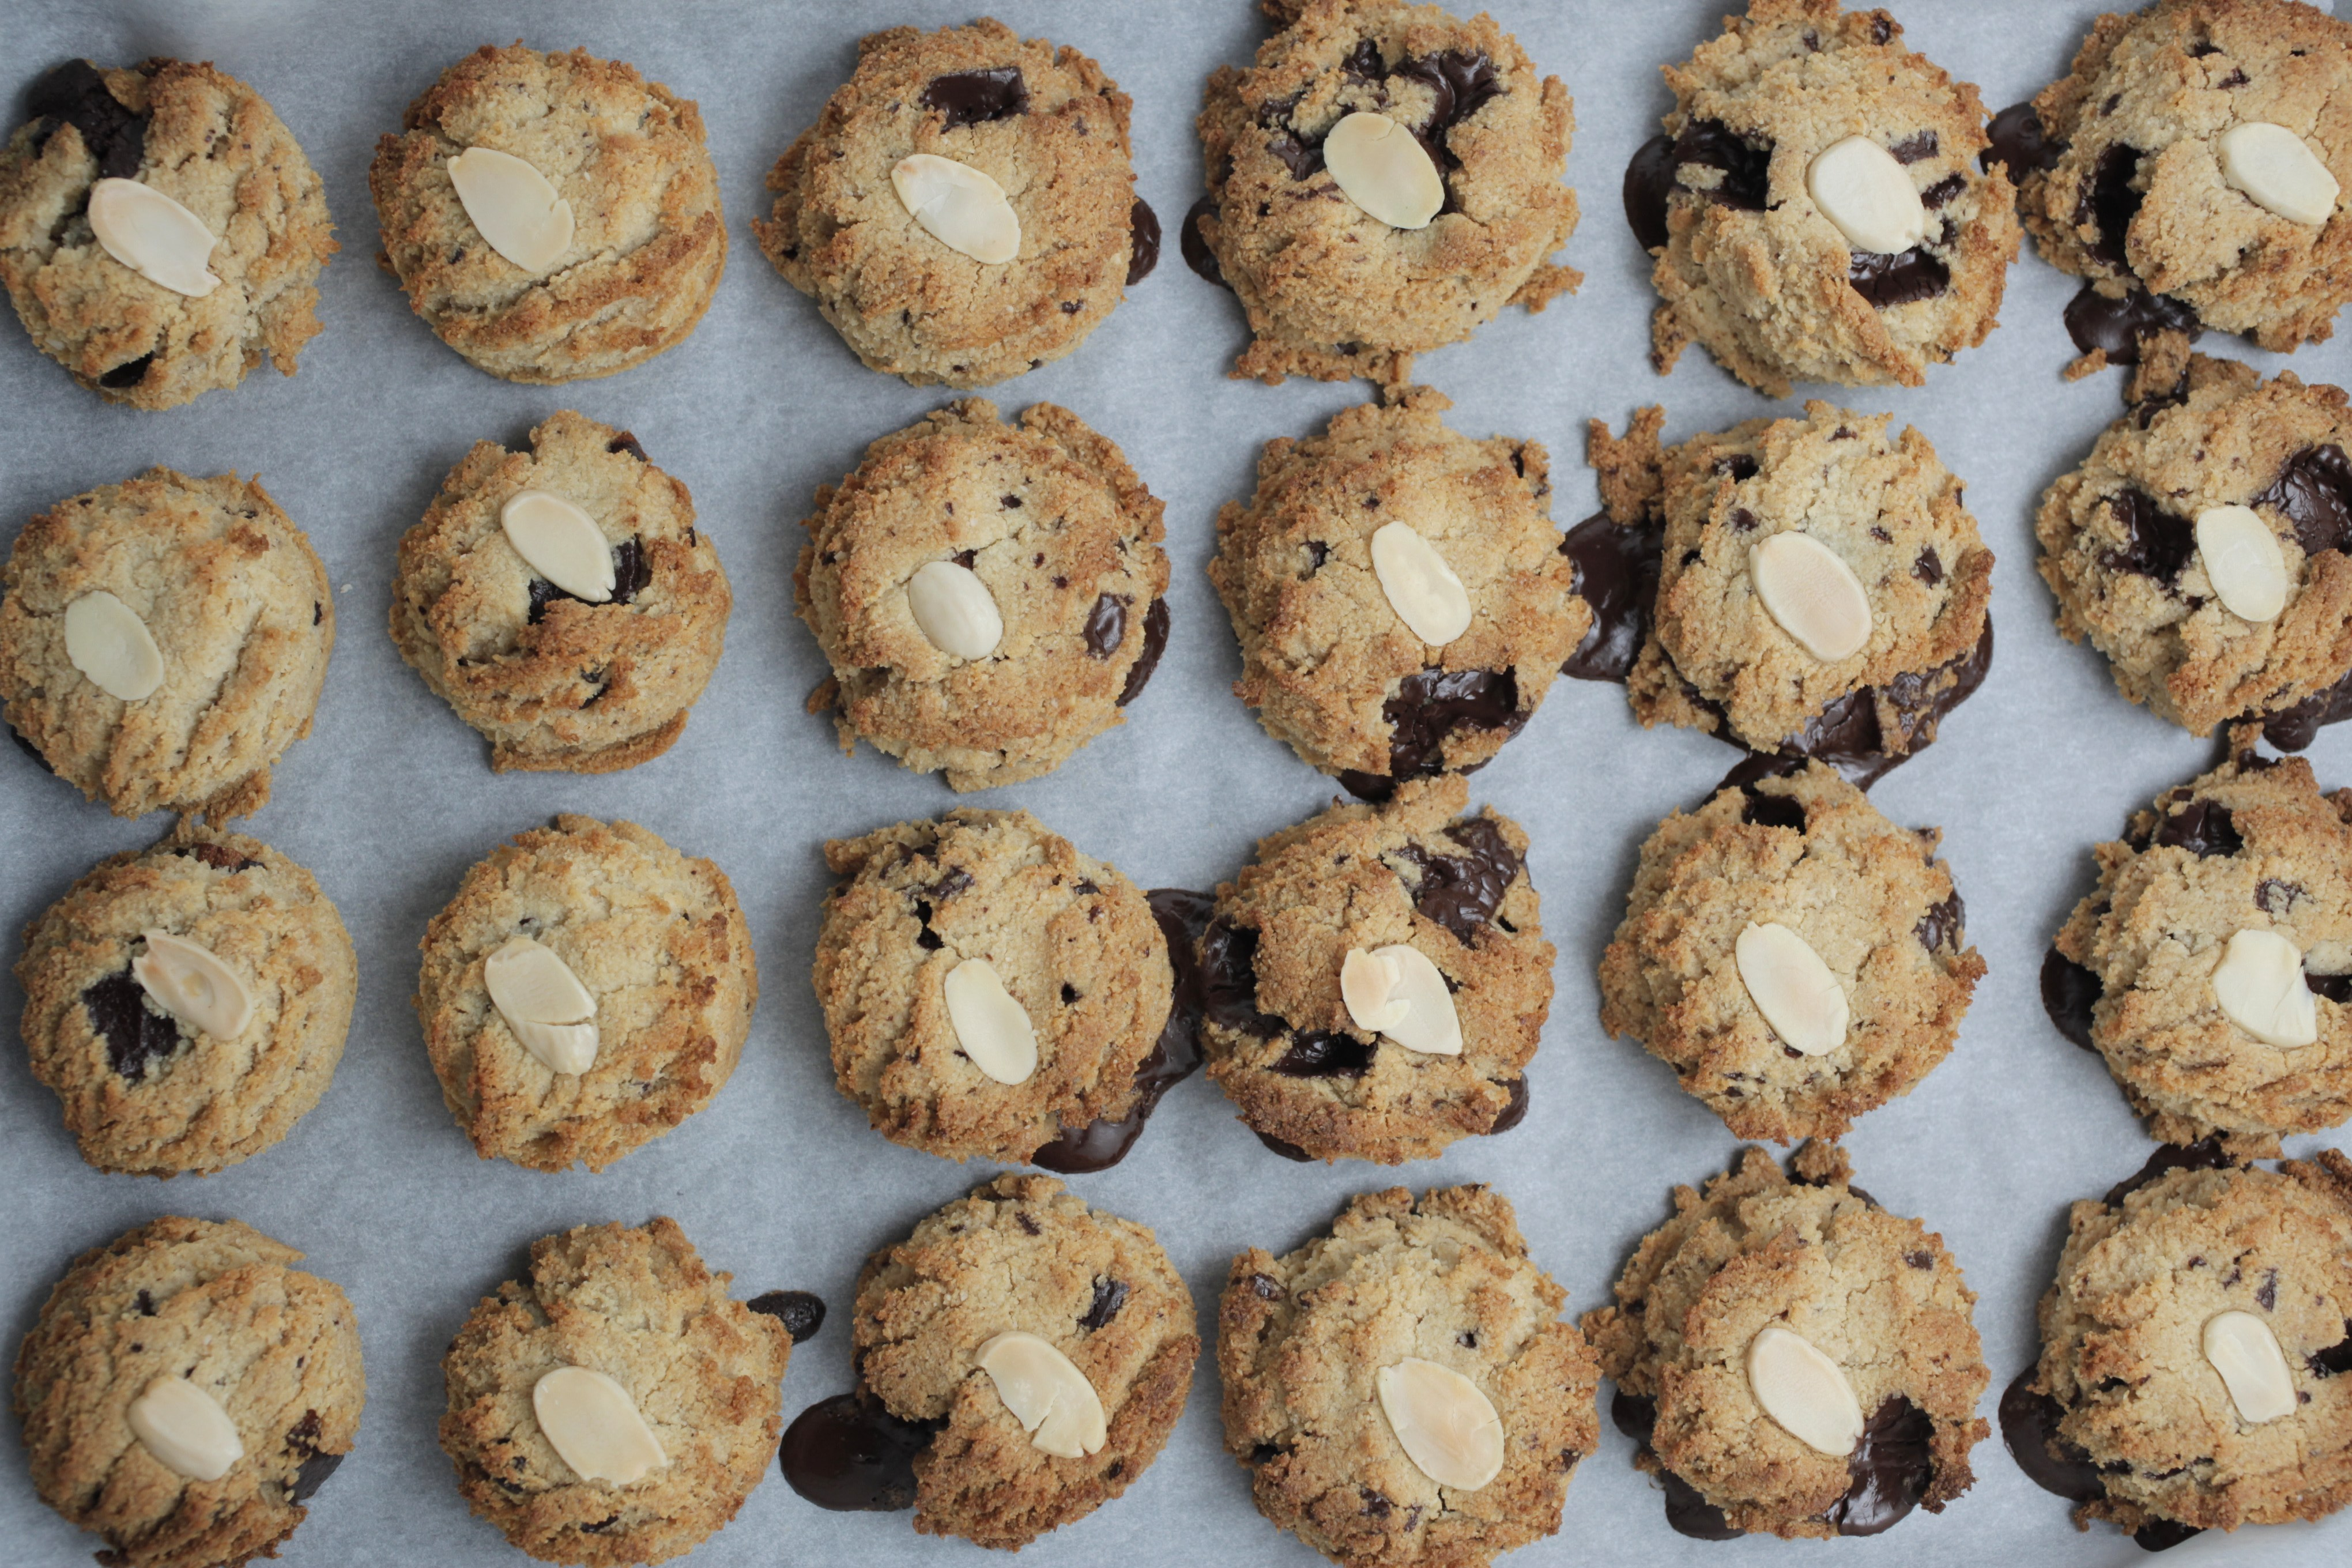 Healthy chocolate chip cookies recipe from Teresa Cutter of The Healthy Chef.